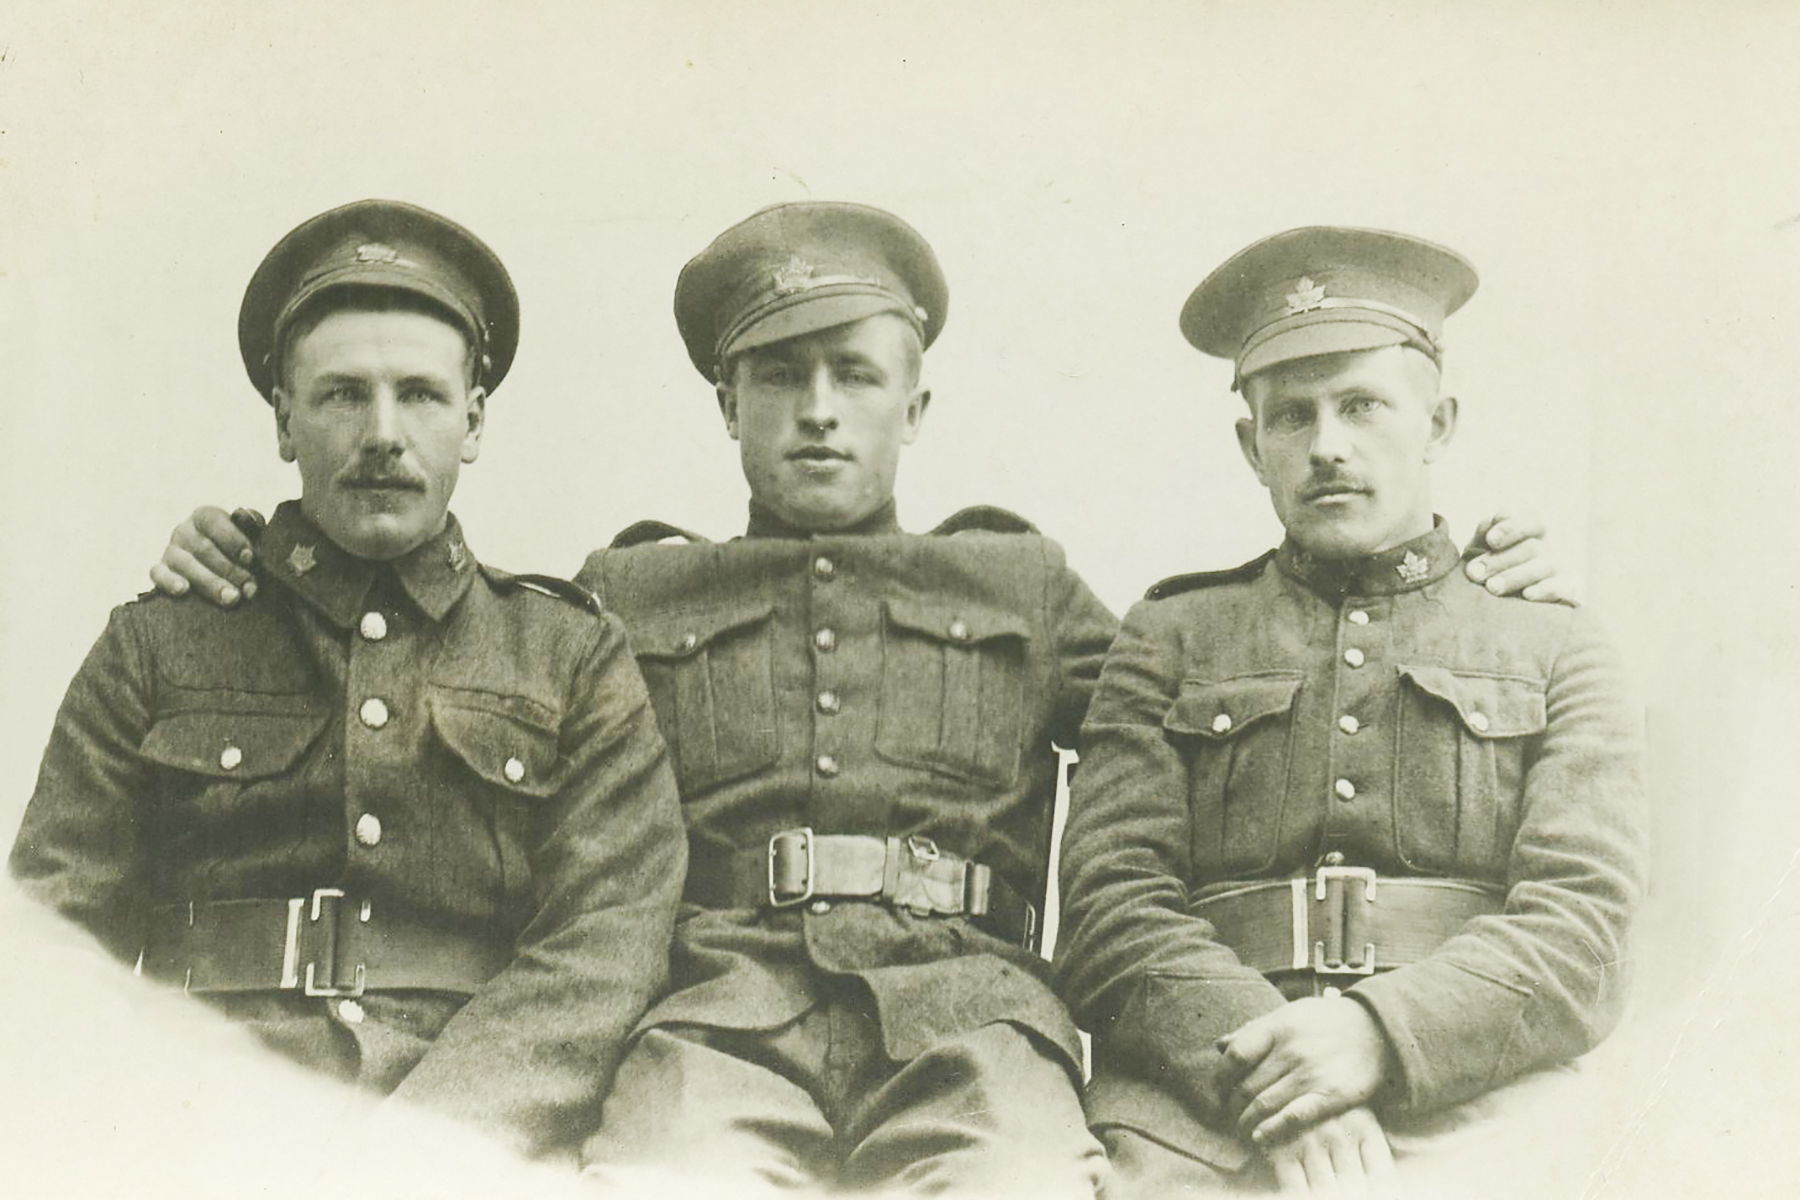 Left to right, my Great Great Uncle Jorgen Groseth, Charly Brown, Erick Groseth (cousin of Jorgen). Members of the 232nd CEF, 15th Battalion, 5th Battalion